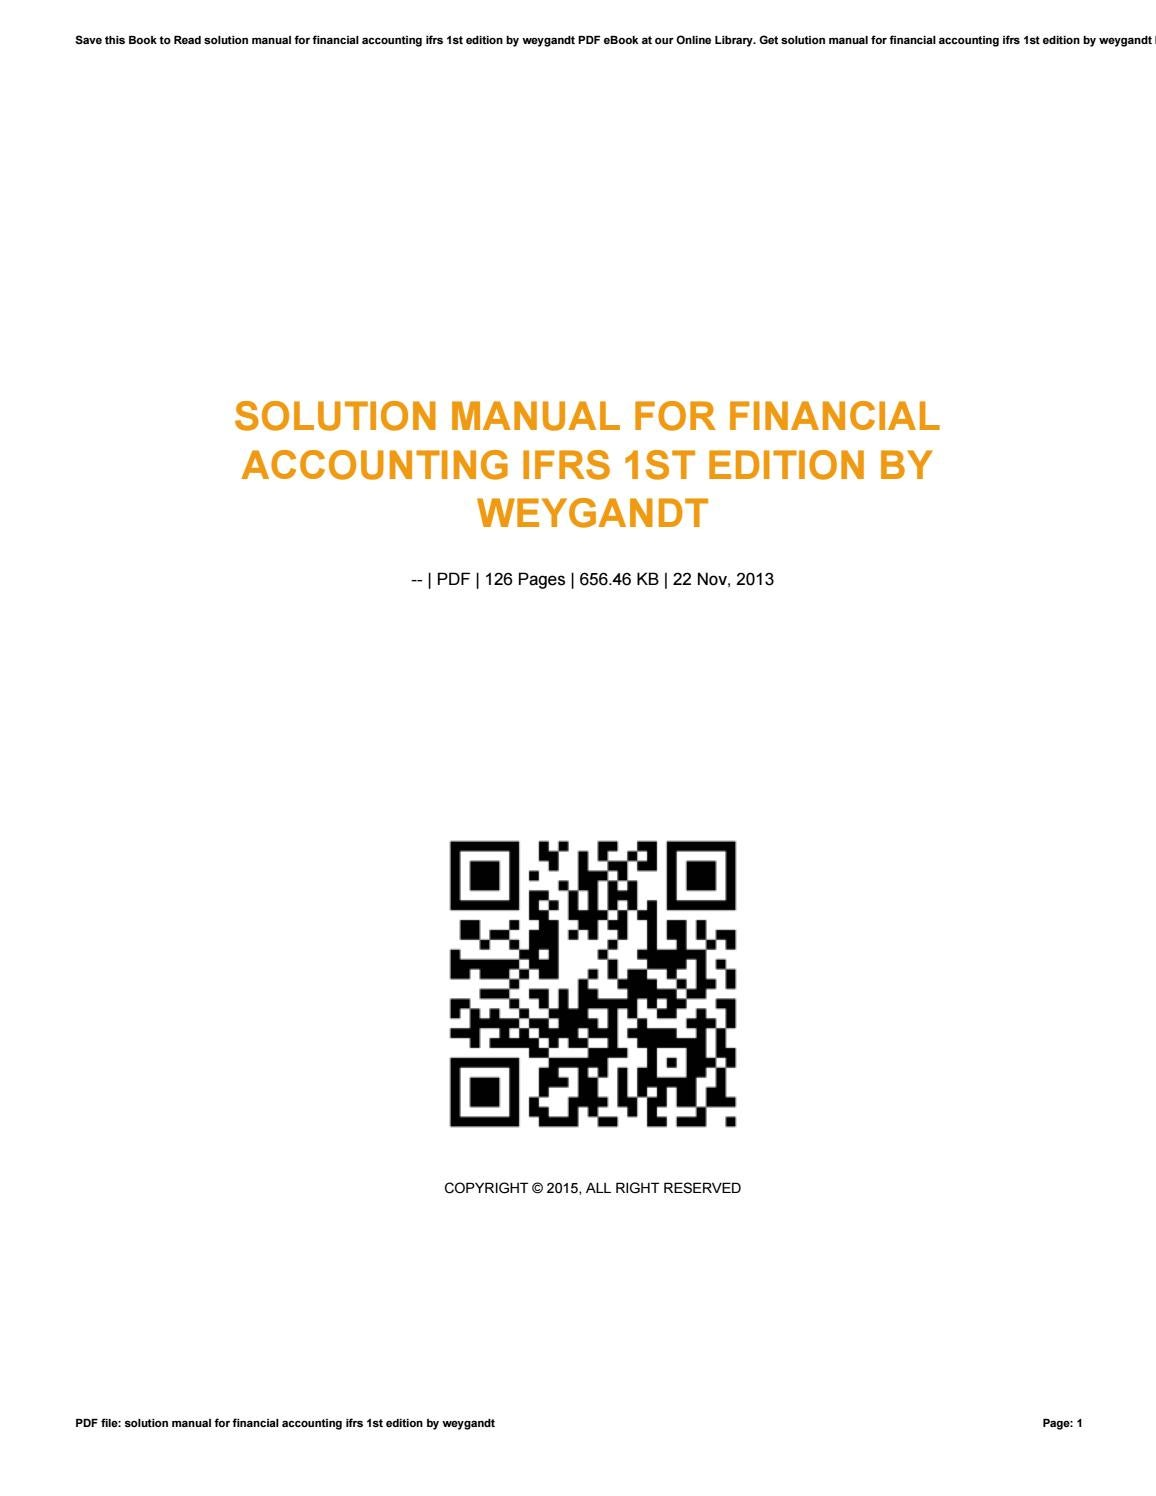 Solution manual for financial accounting ifrs 1st edition by weygandt by  gotimes20 - issuu